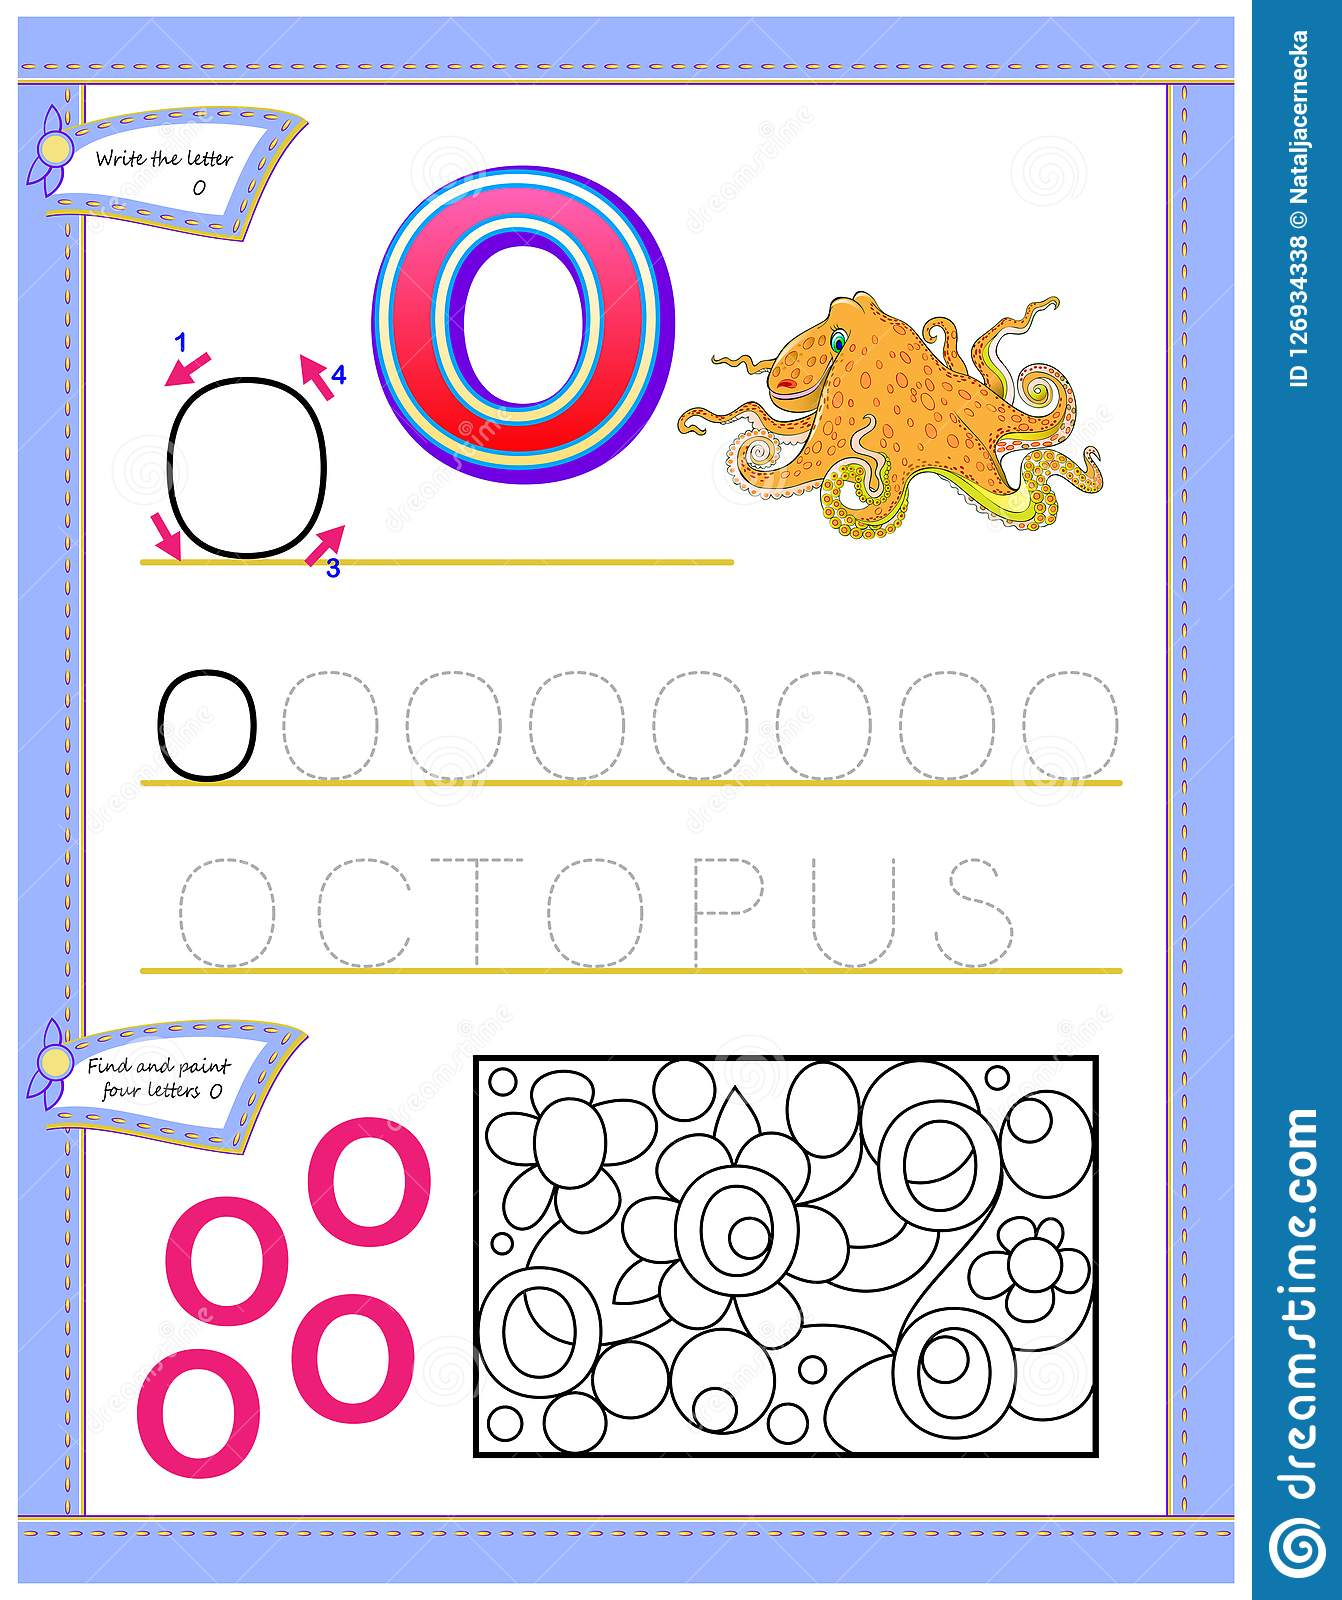 Worksheet For Kids With Letter O For Study English